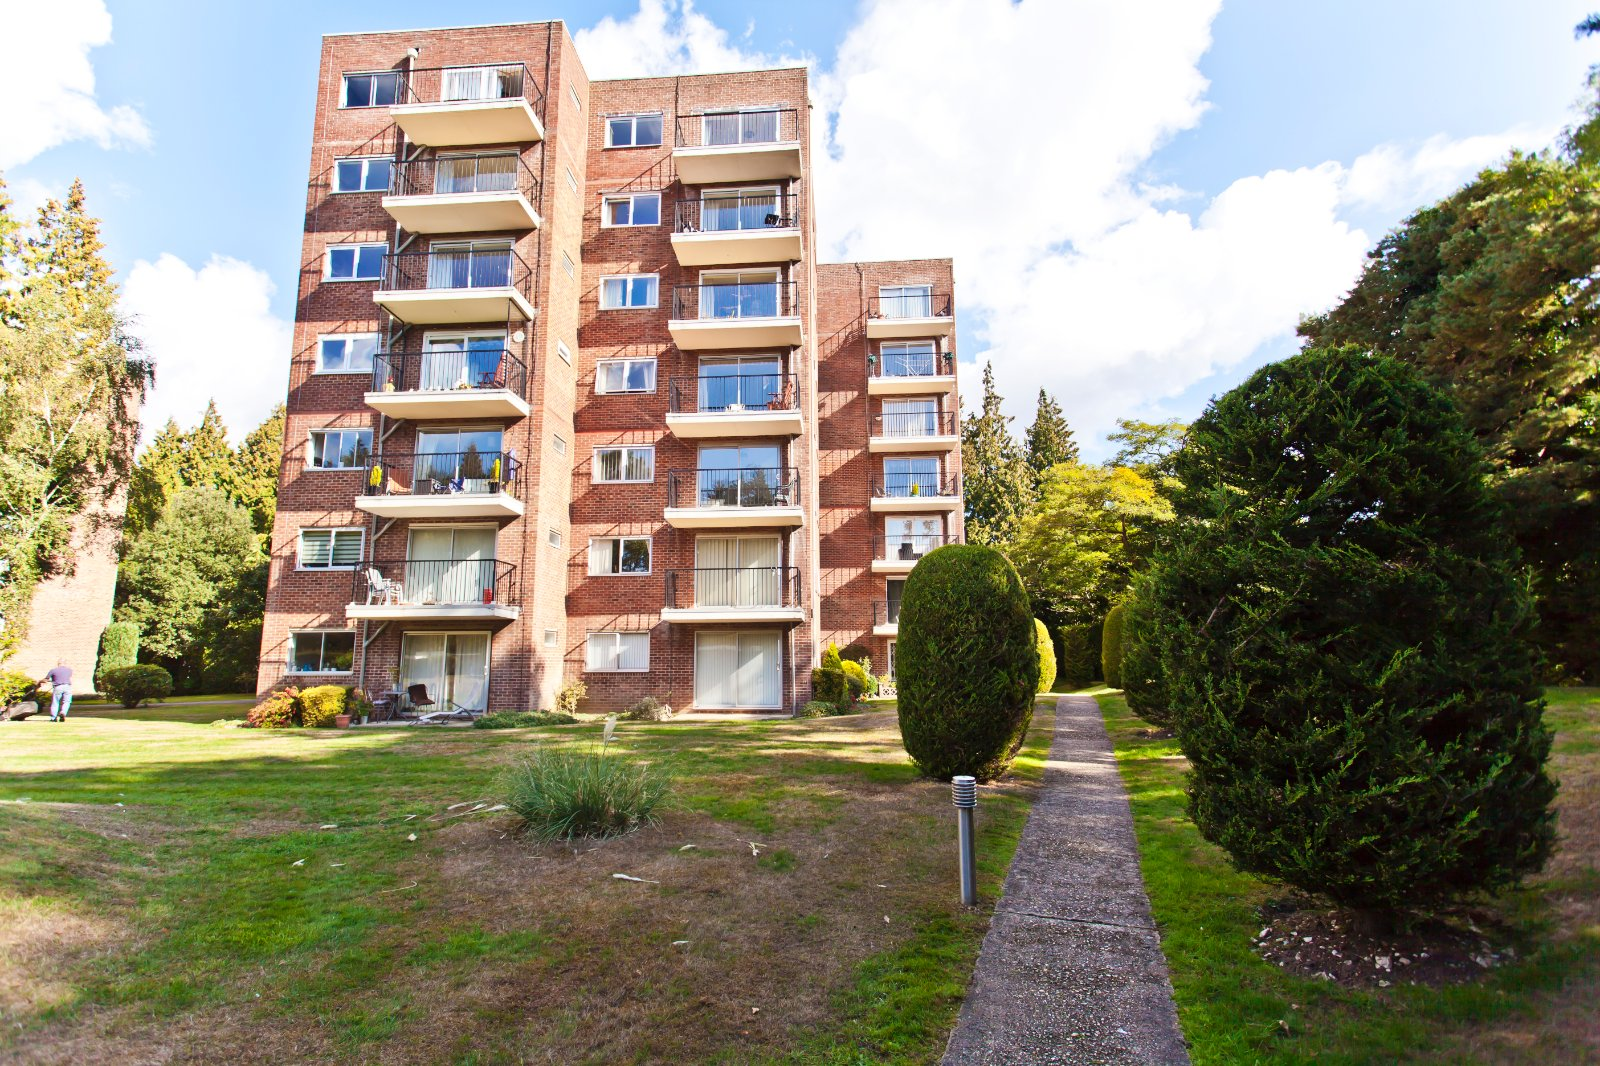 1 bed apartment for sale in Branksome Park, BH13